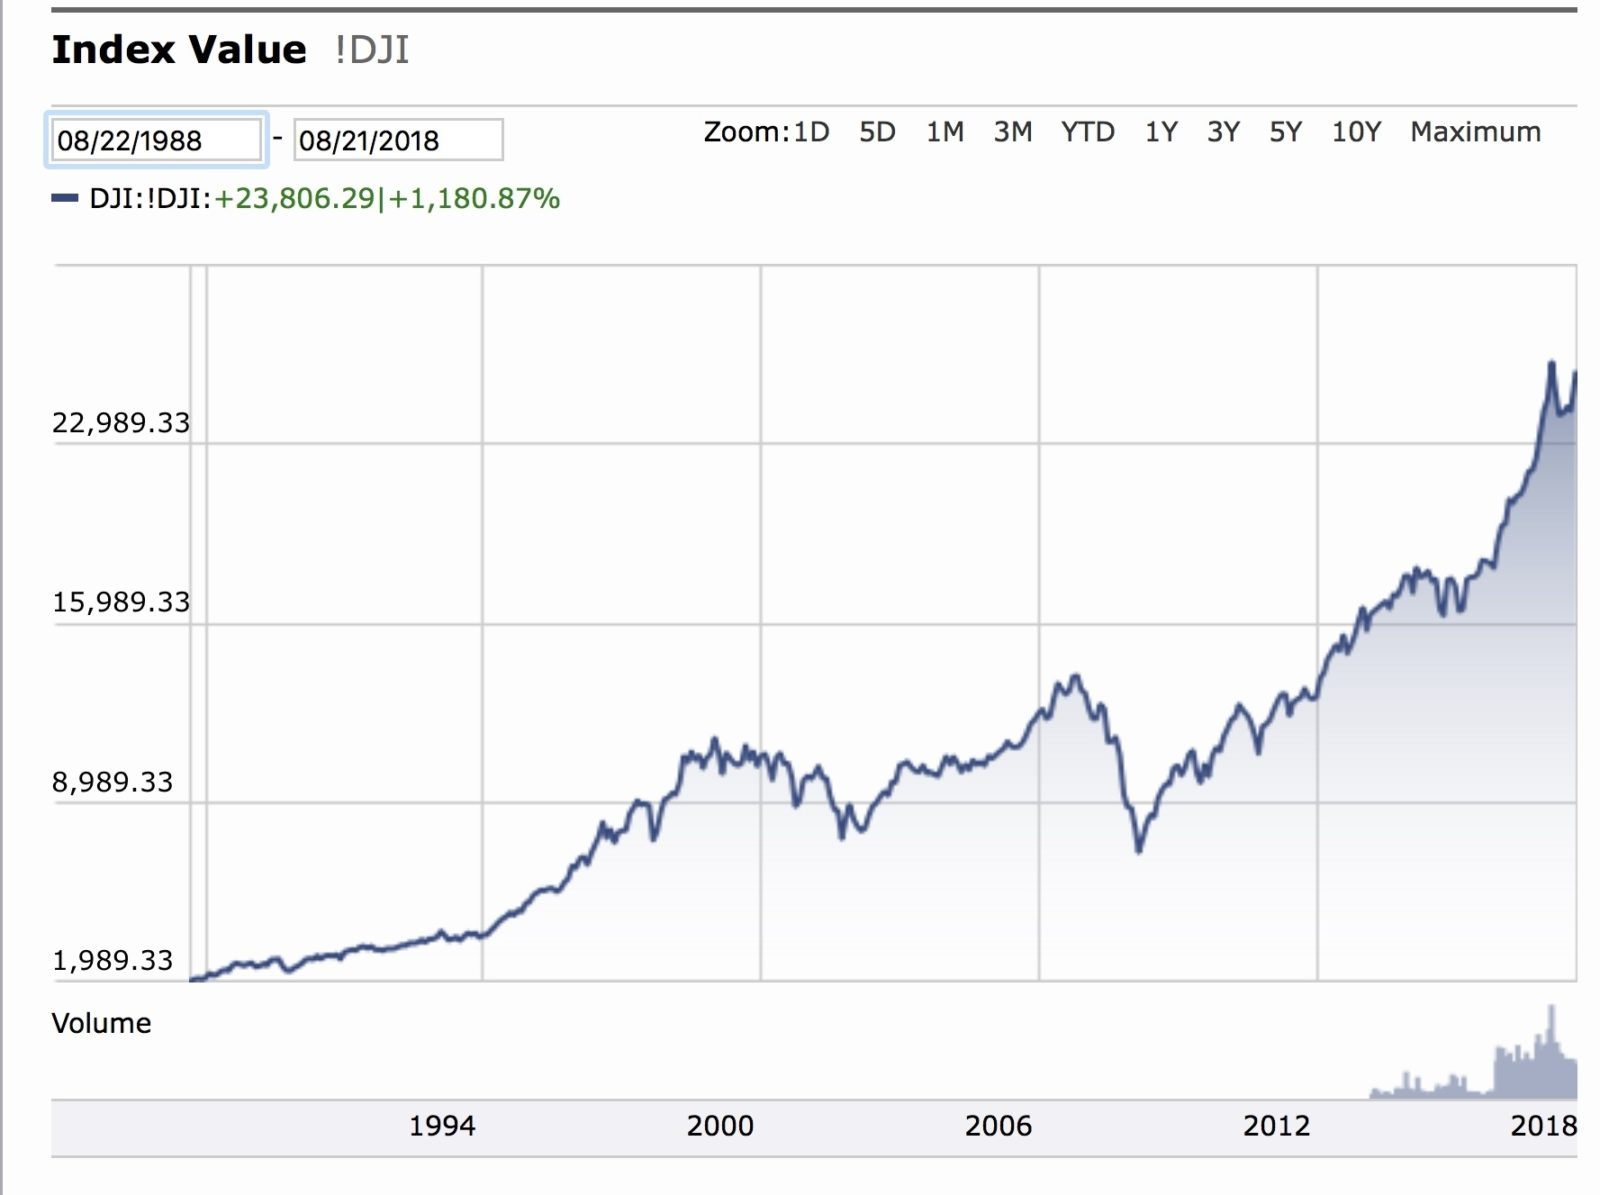 How-to-respond-if-markets-tumble-DJIA-1988-2008.jpeg